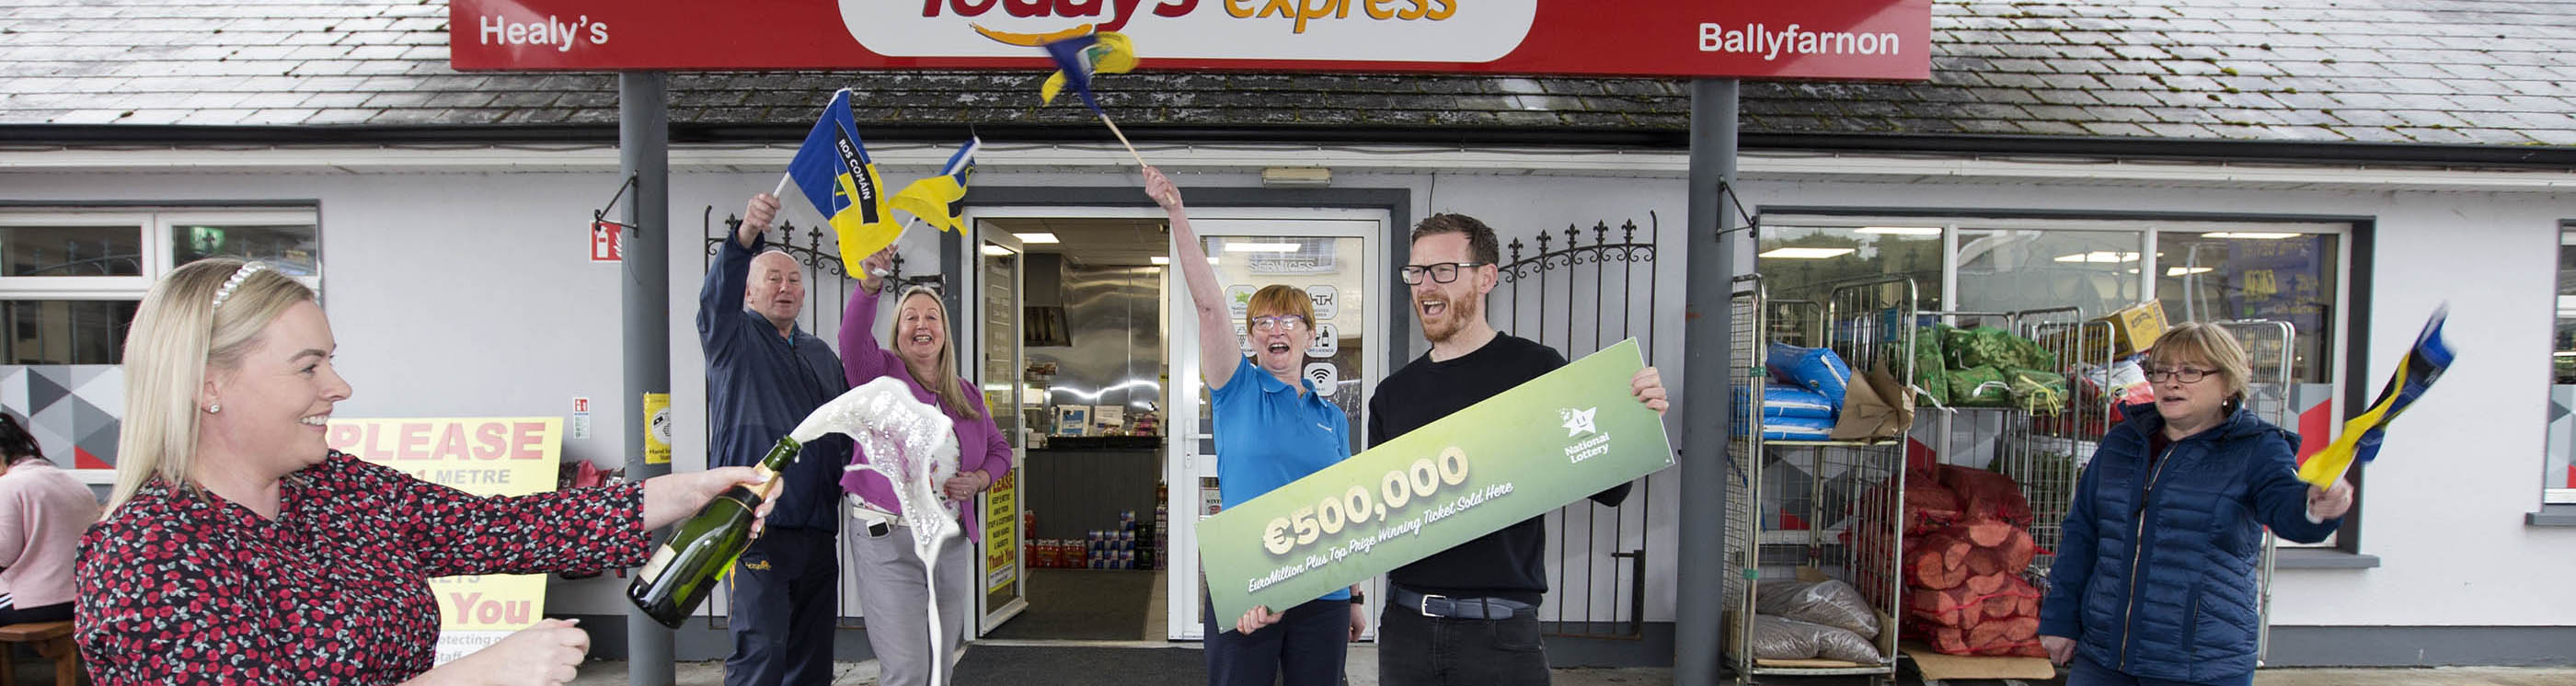 Owners of Healy's Express, Ballyfarnon, County Roscommon celebrate having sold EuroMillions Plus €500,000 winning ticket